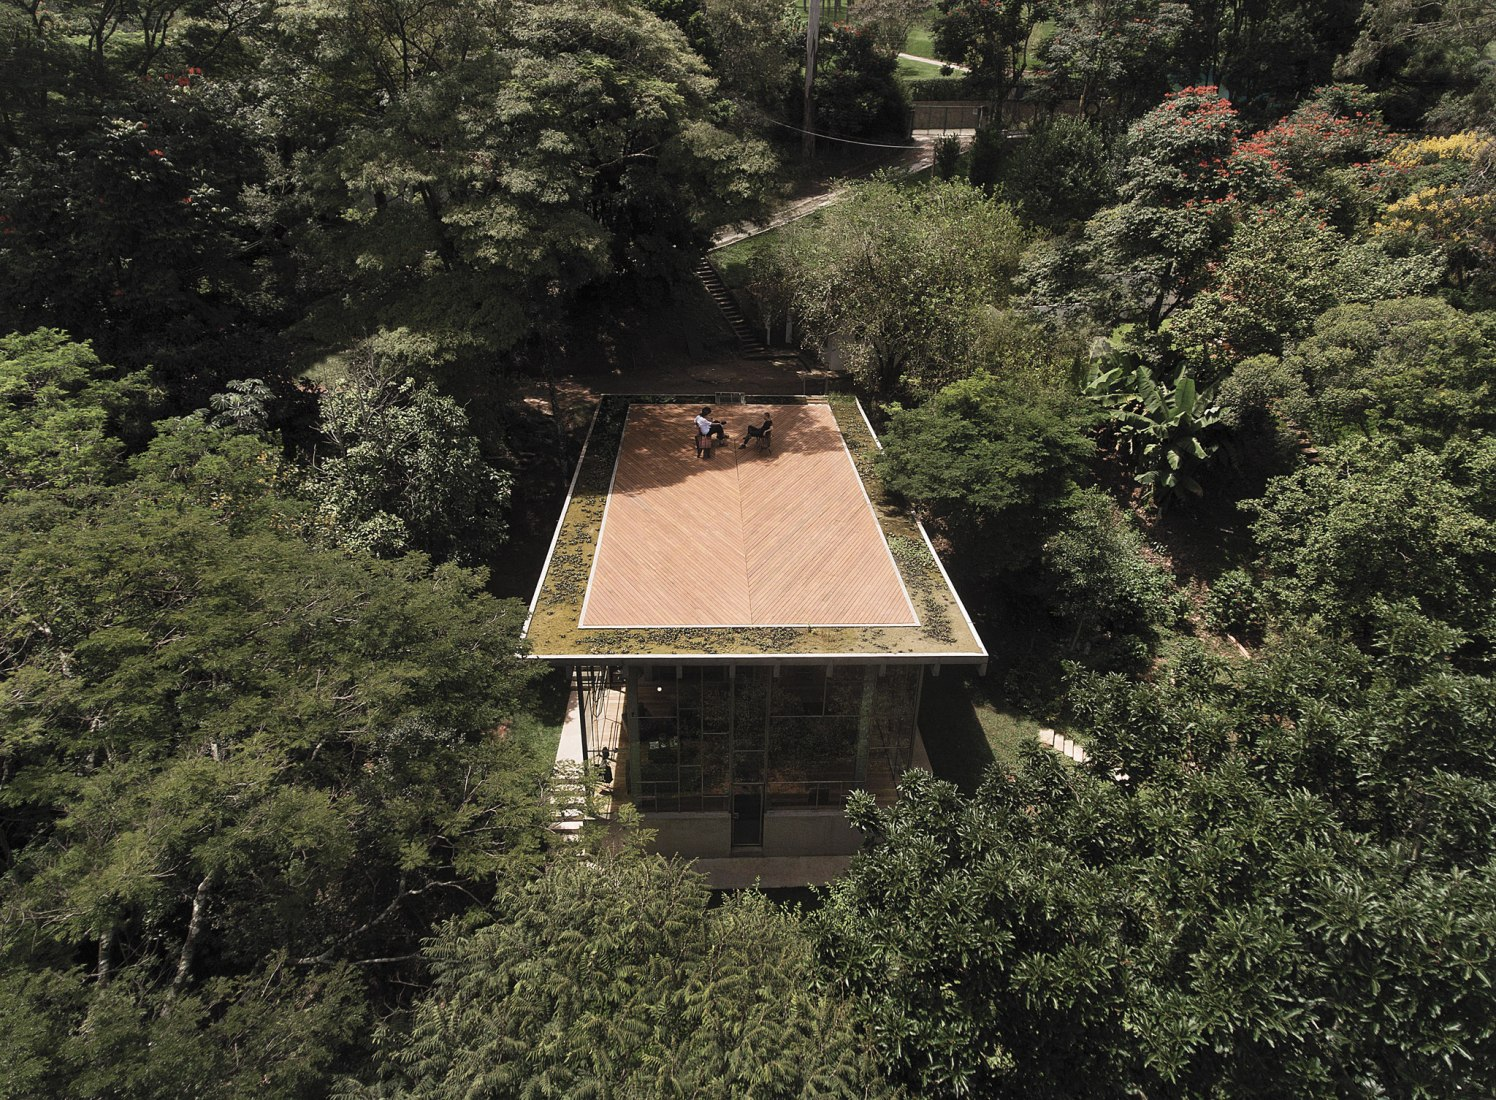 Library house in the vinhedo forest by Atelier Branco. Photograph by Gleeson Paulino.